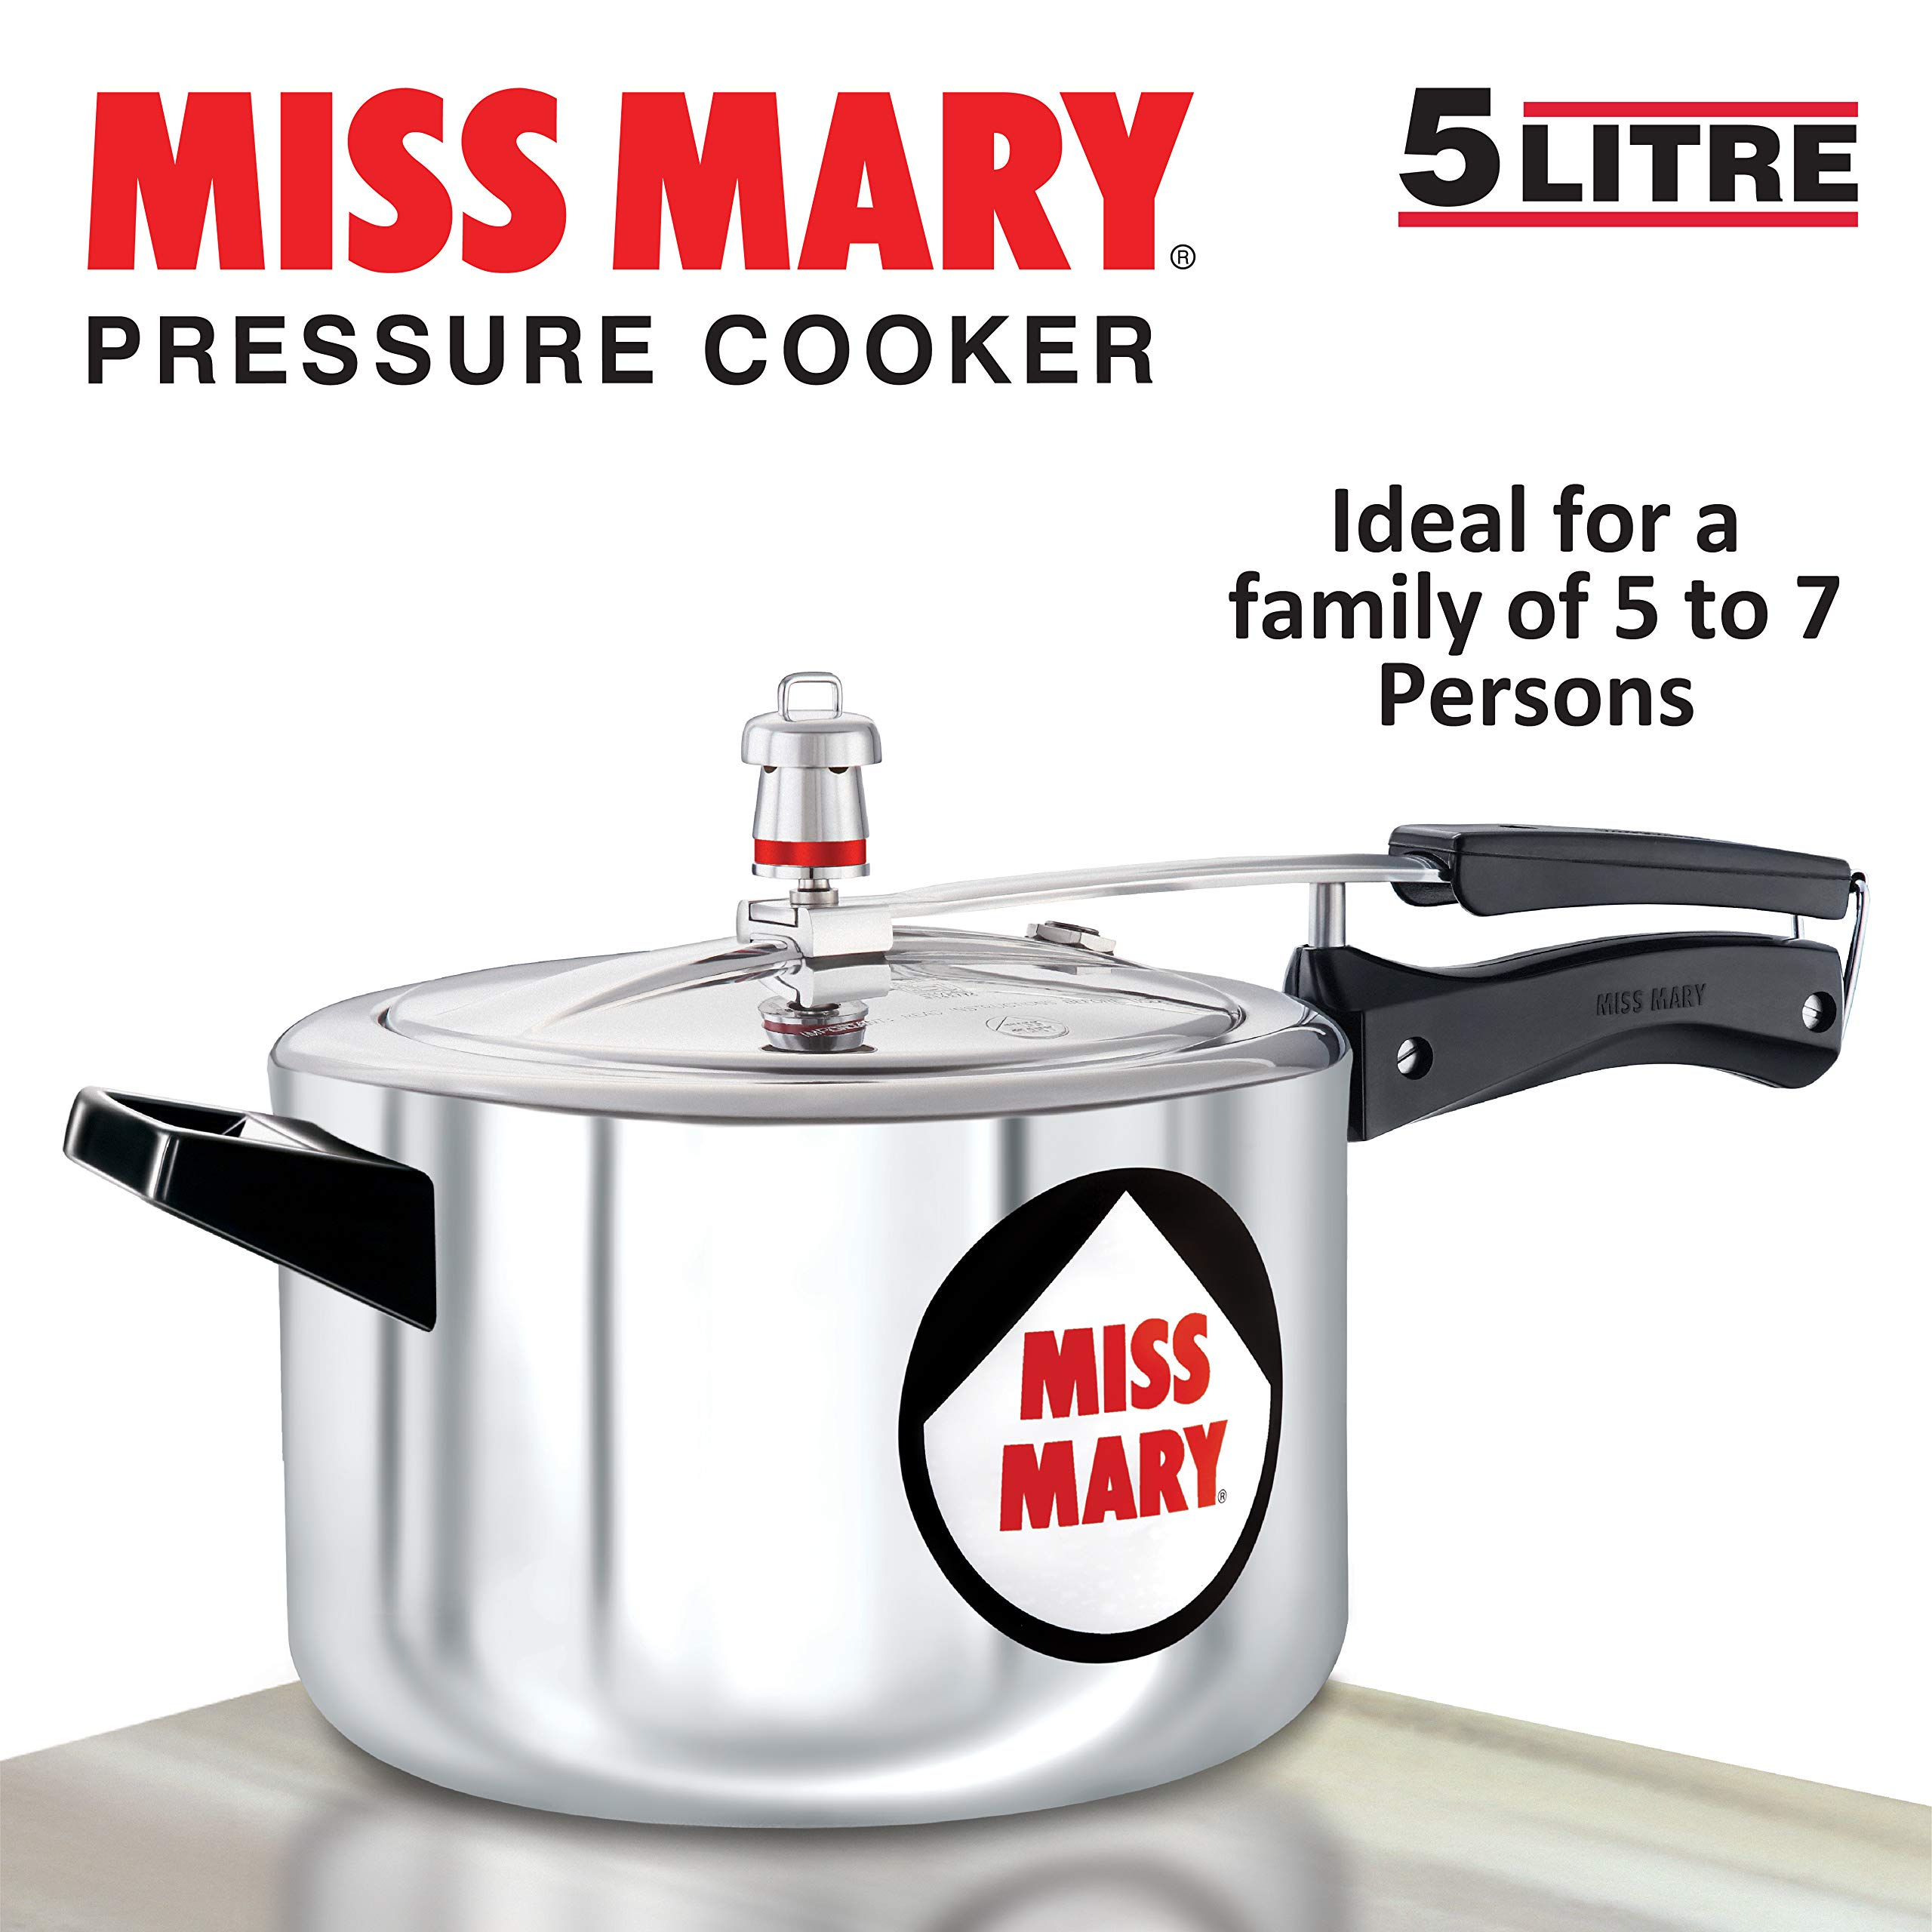 Hawkins Miss Mary Aluminium Pressure Cooker, 5 litres, Silver product image